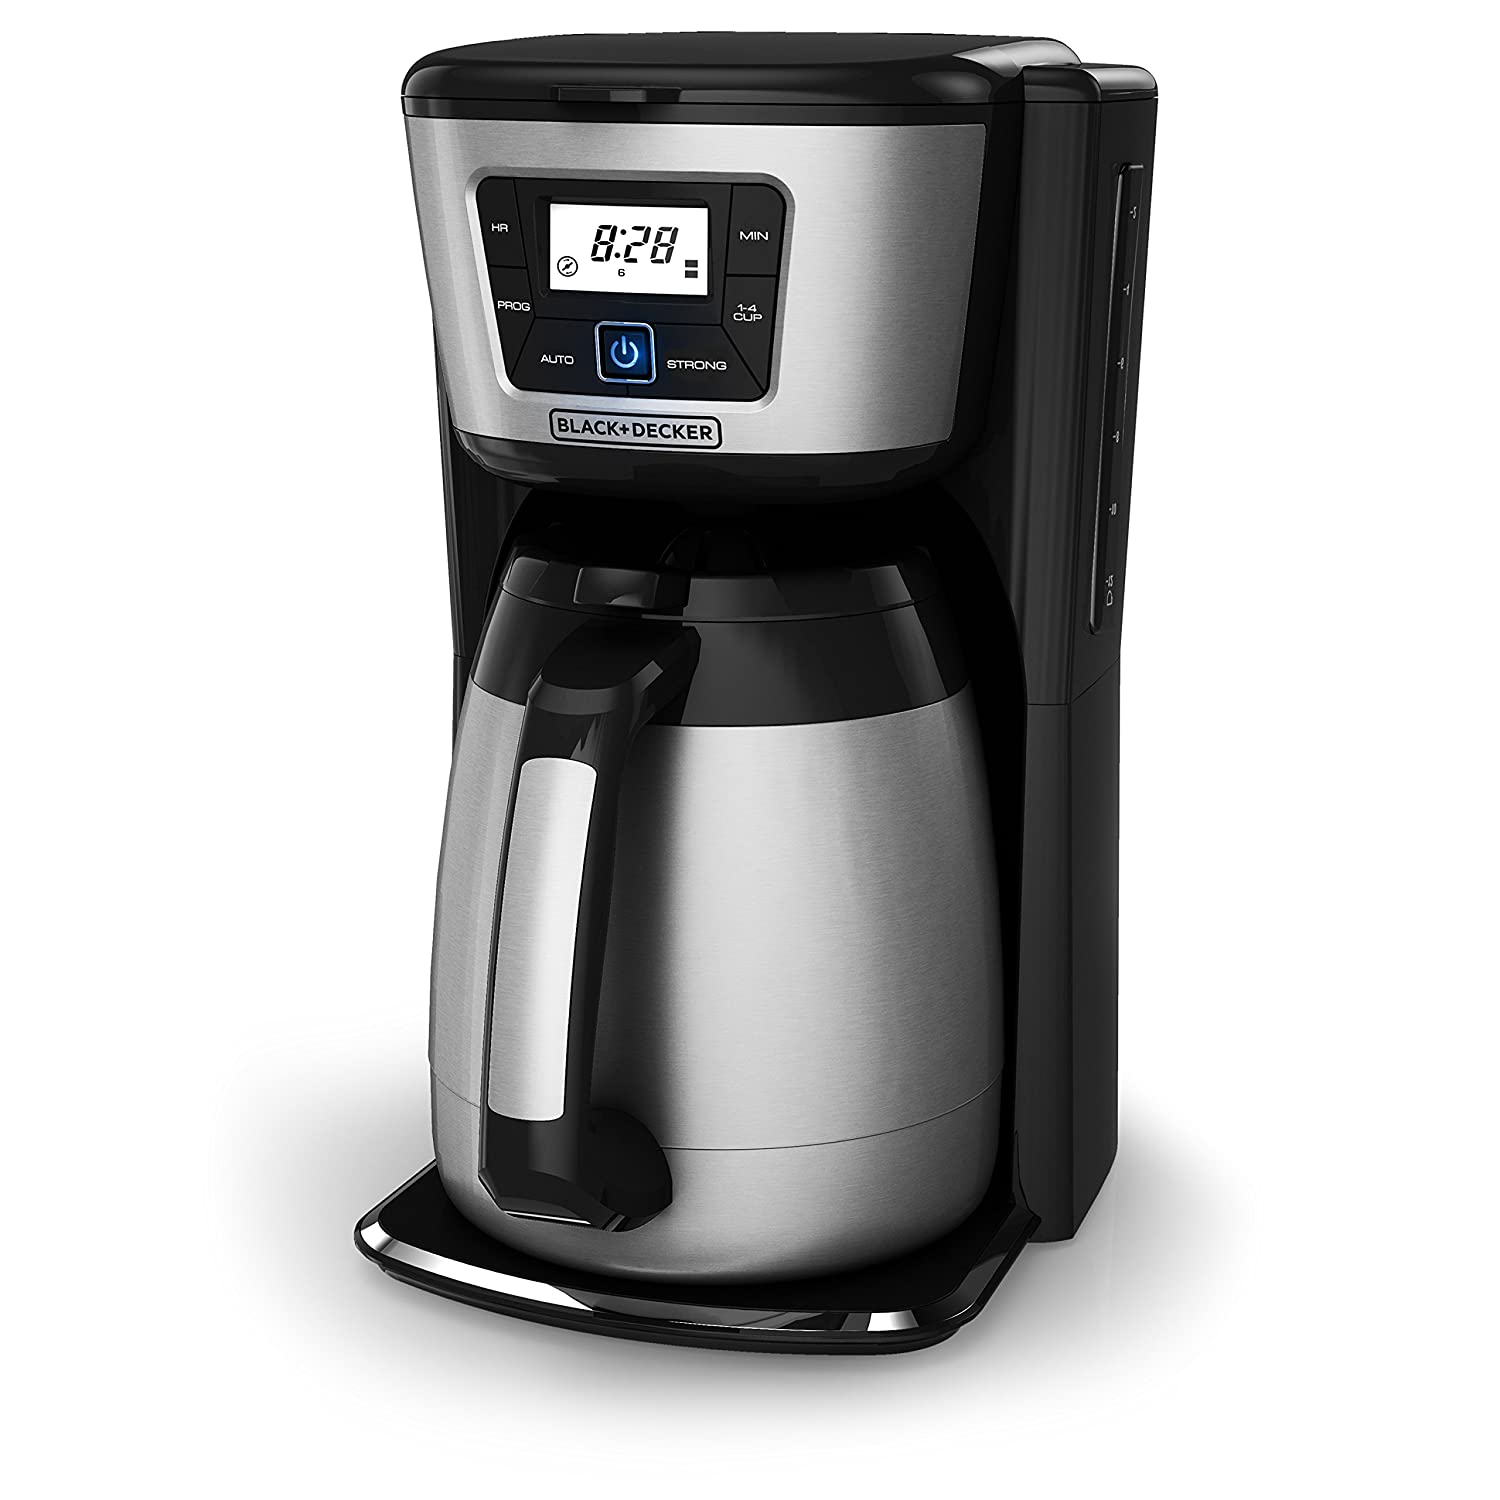 Black and decker coffee maker 12 cup programmable - Amazon Com Black Decker 12 Cup Thermal Coffeemaker Black Silver Cm2035b Kitchen Dining